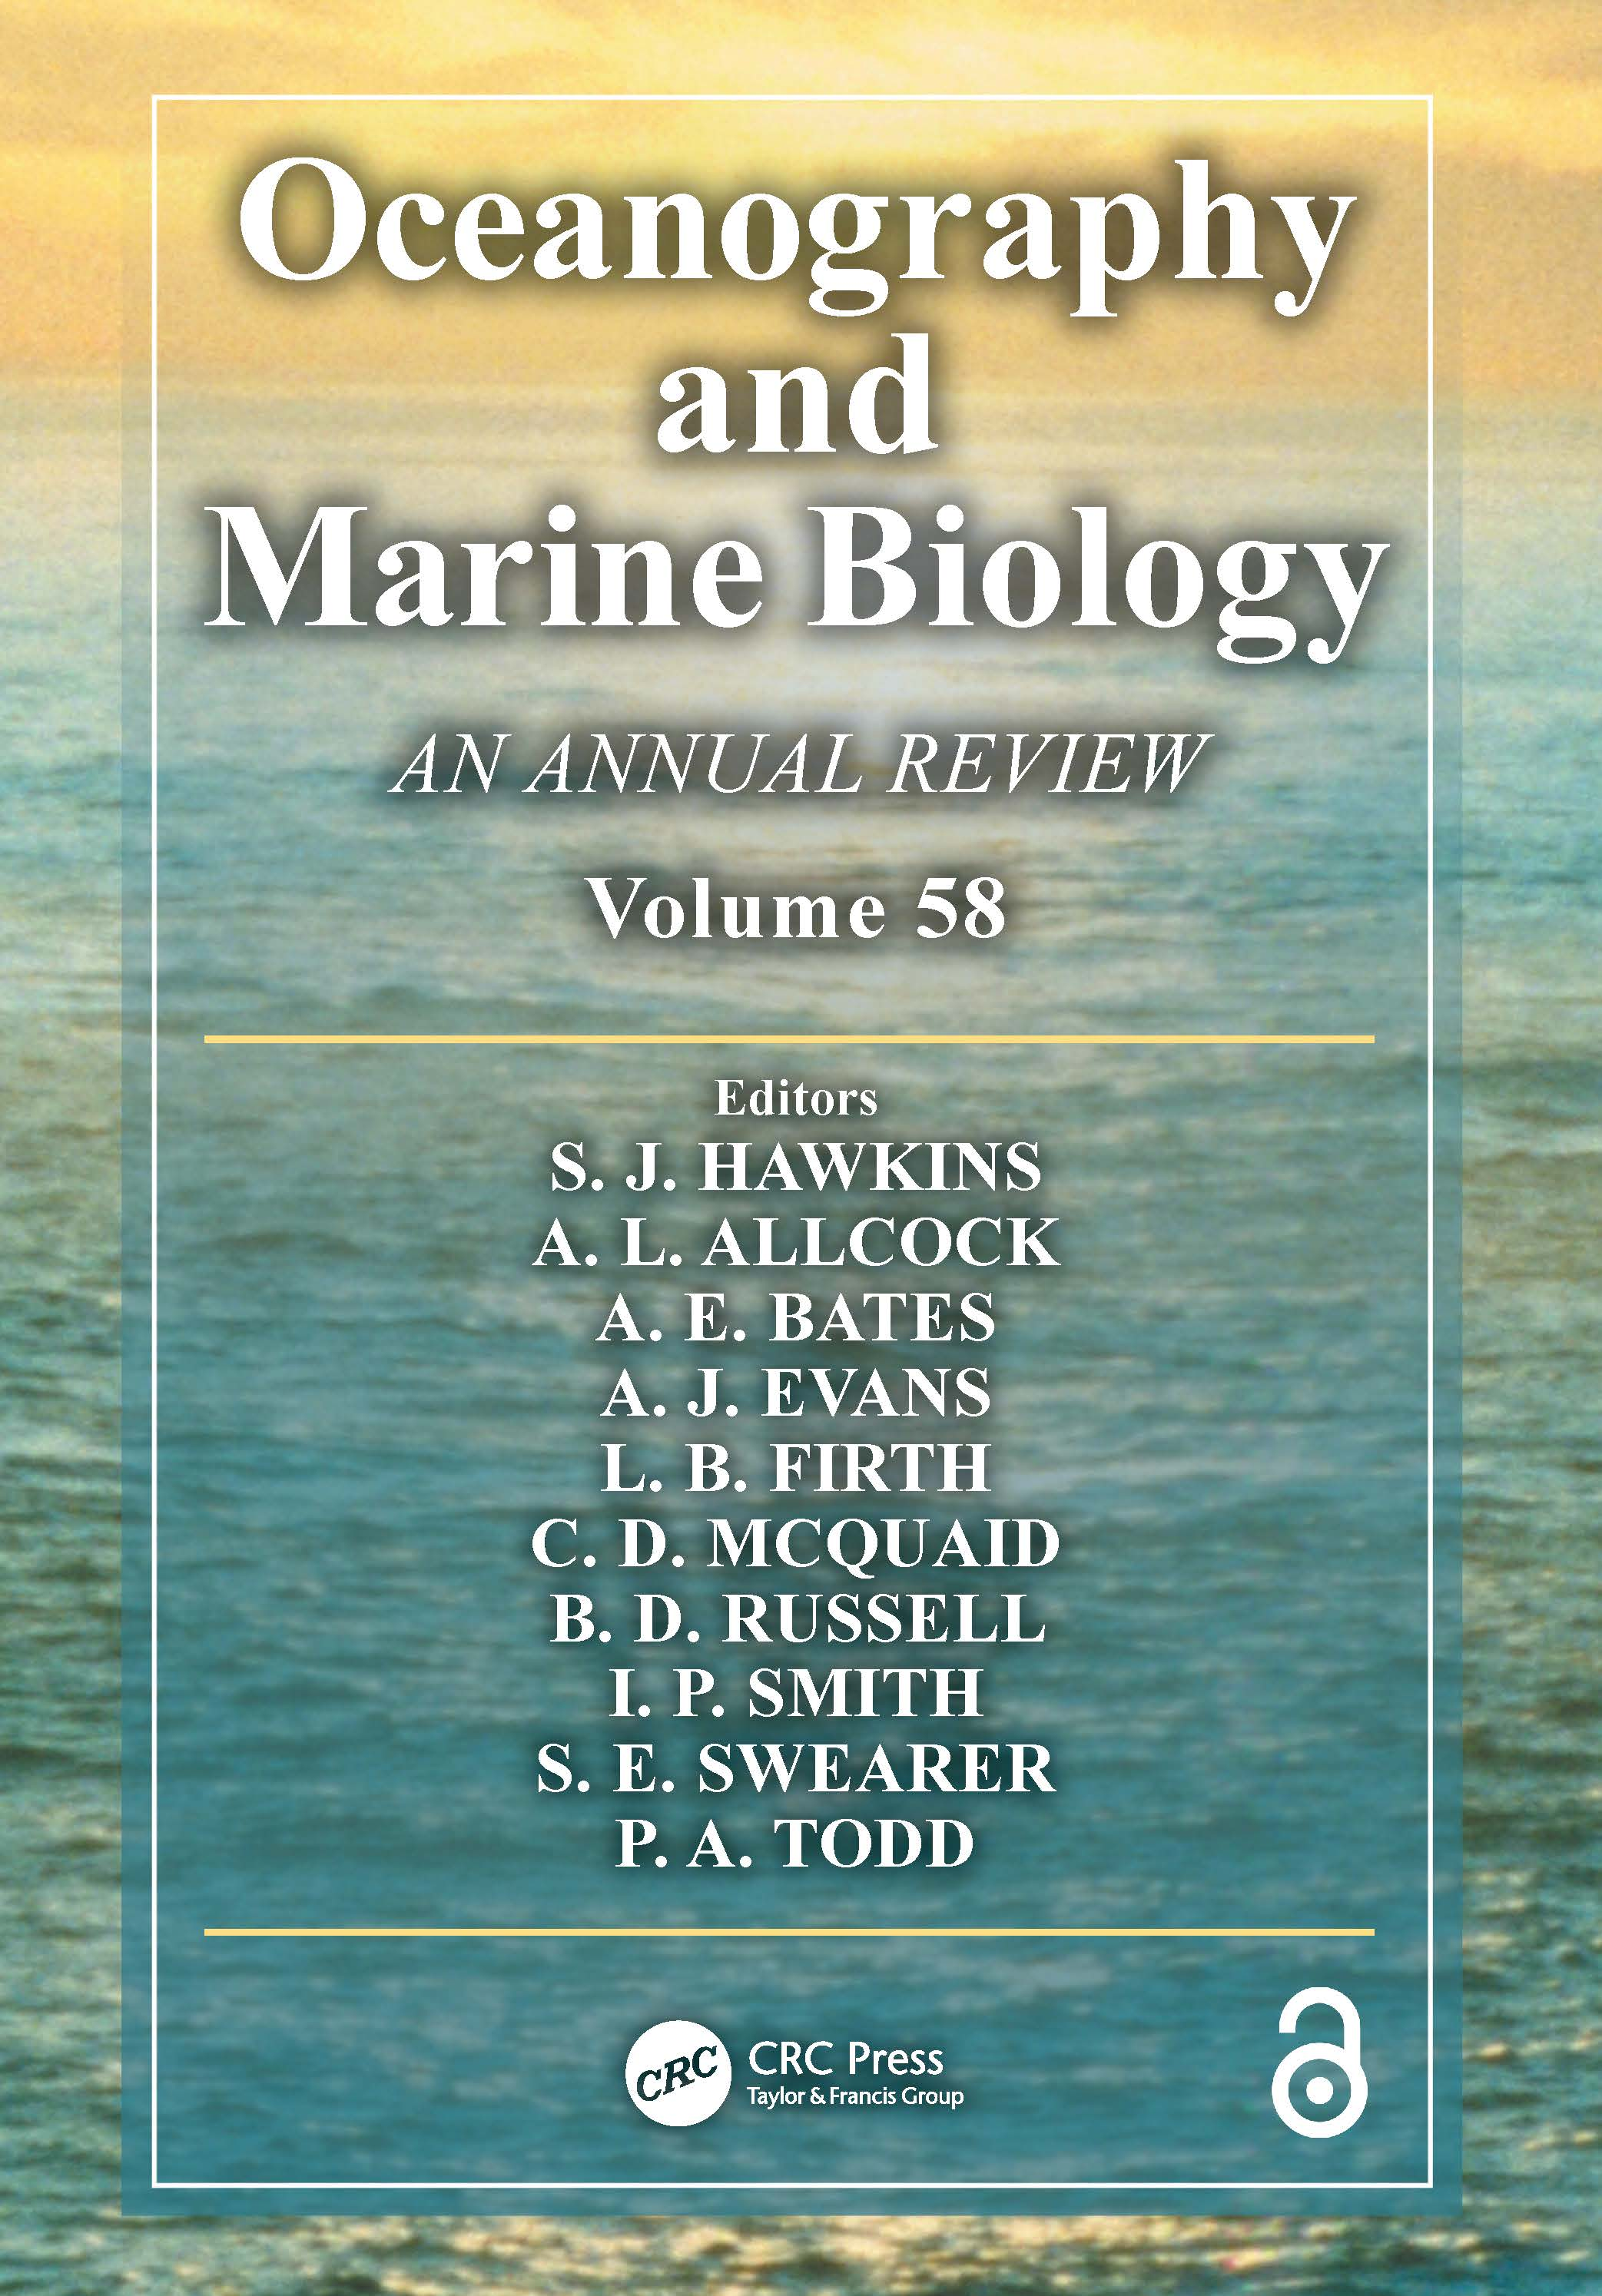 Oceanography and Marine Biology: An Annual Review, Volume 58 book cover